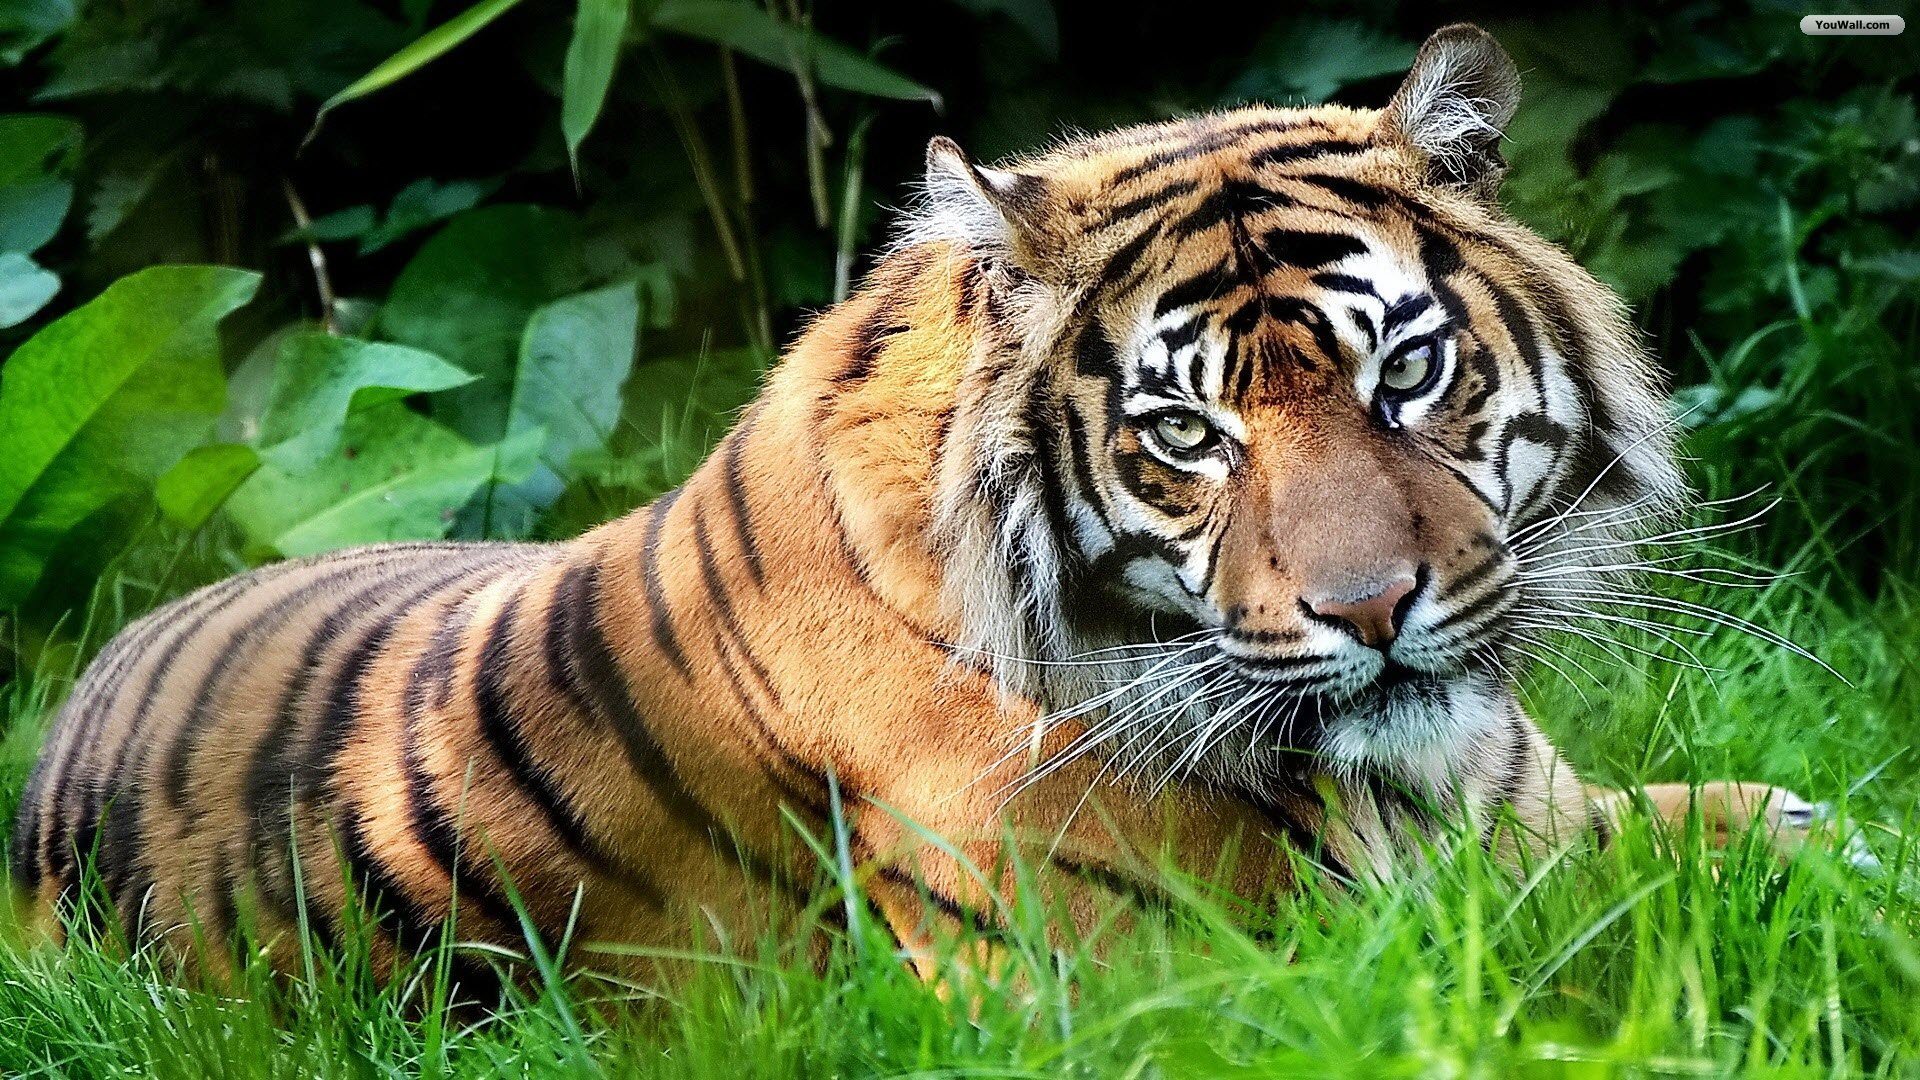 Tiger Wallpapers  Best Wallpapers 1920x1080